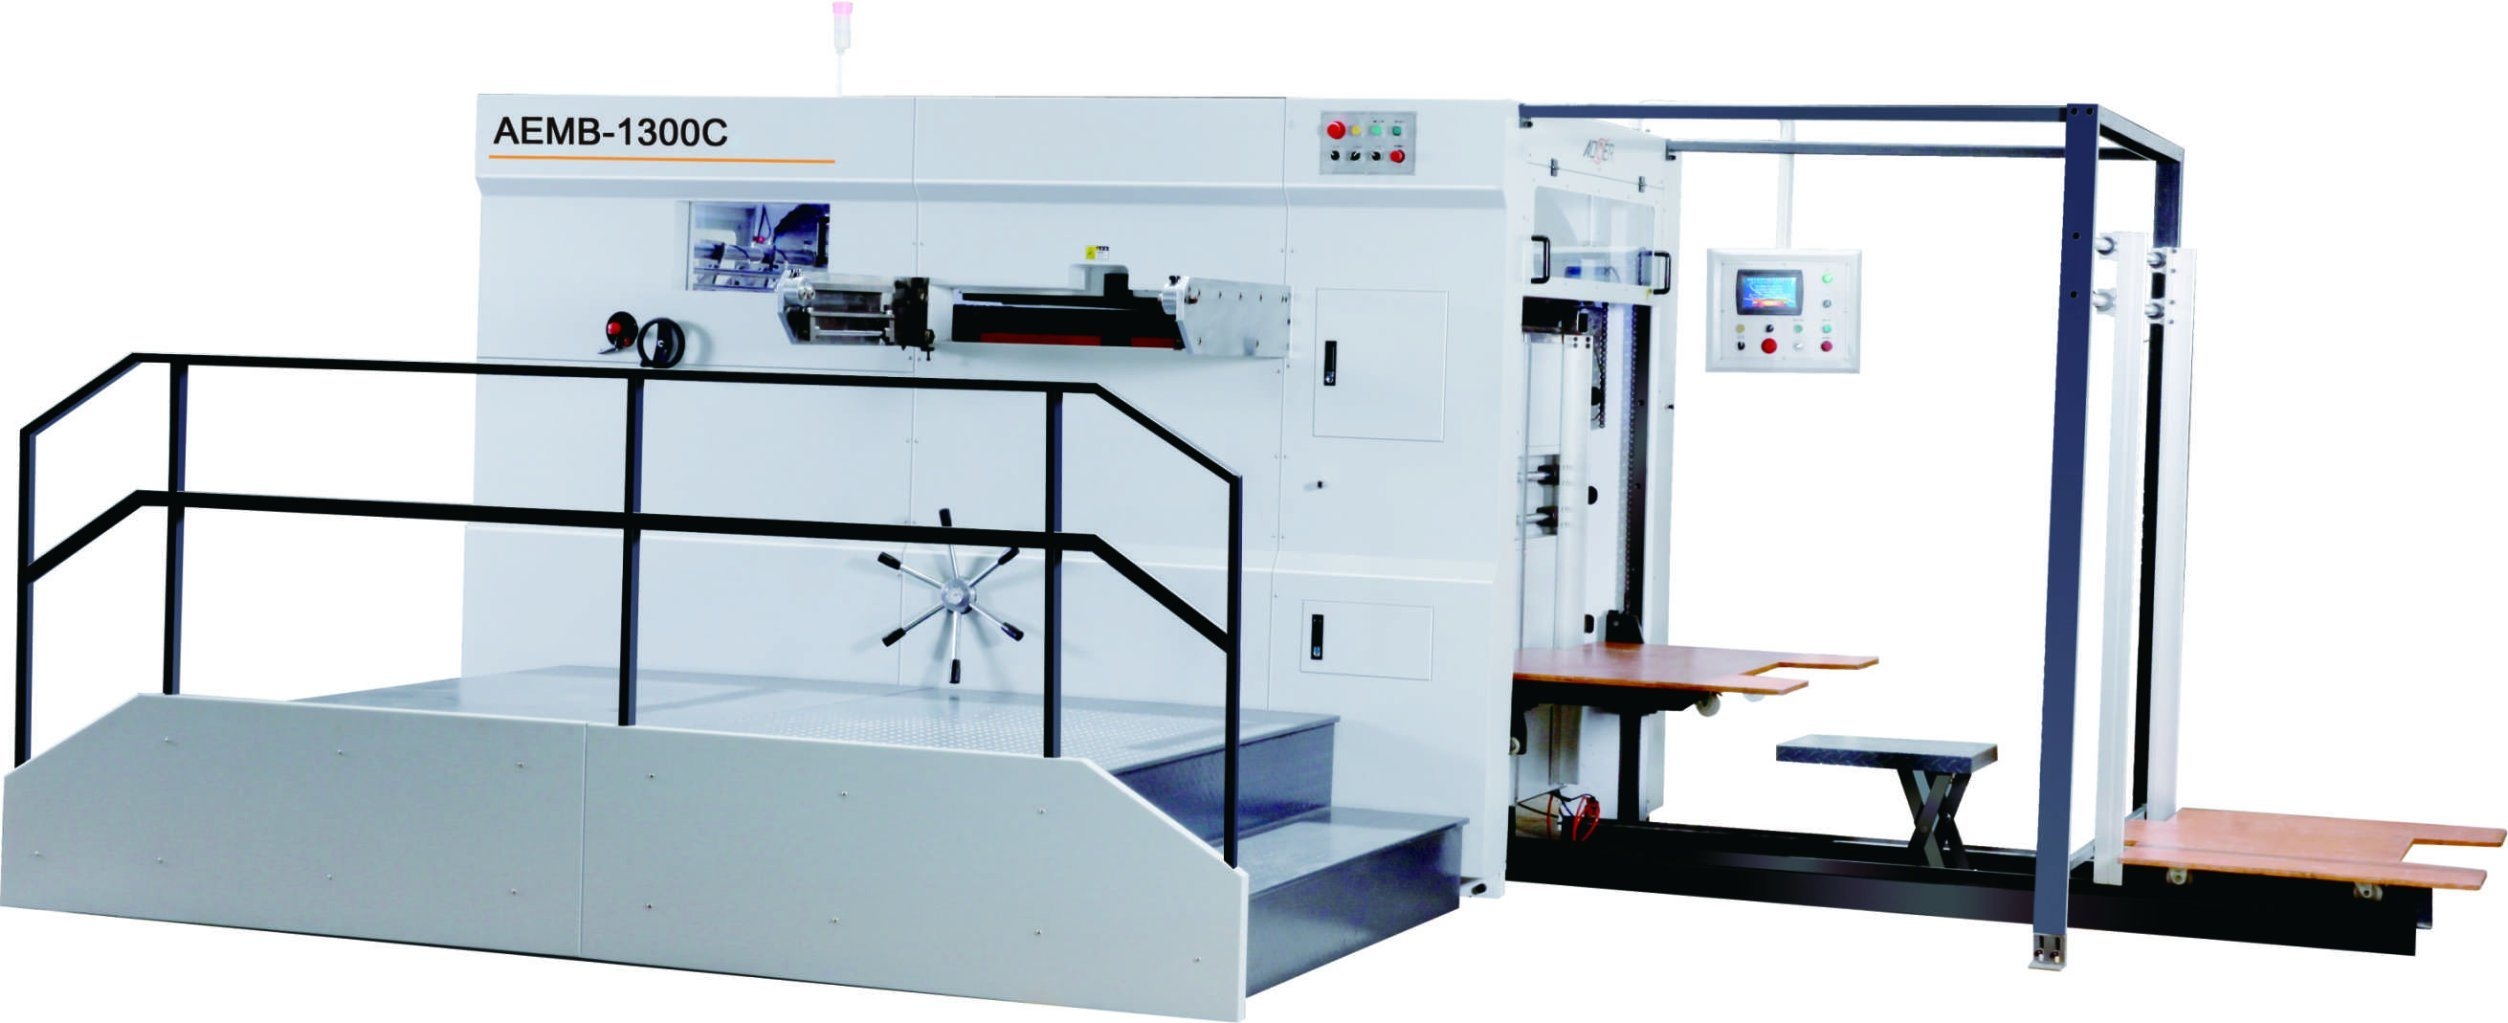 AEM-1300y Semi-Automatic Die Cutting Machine